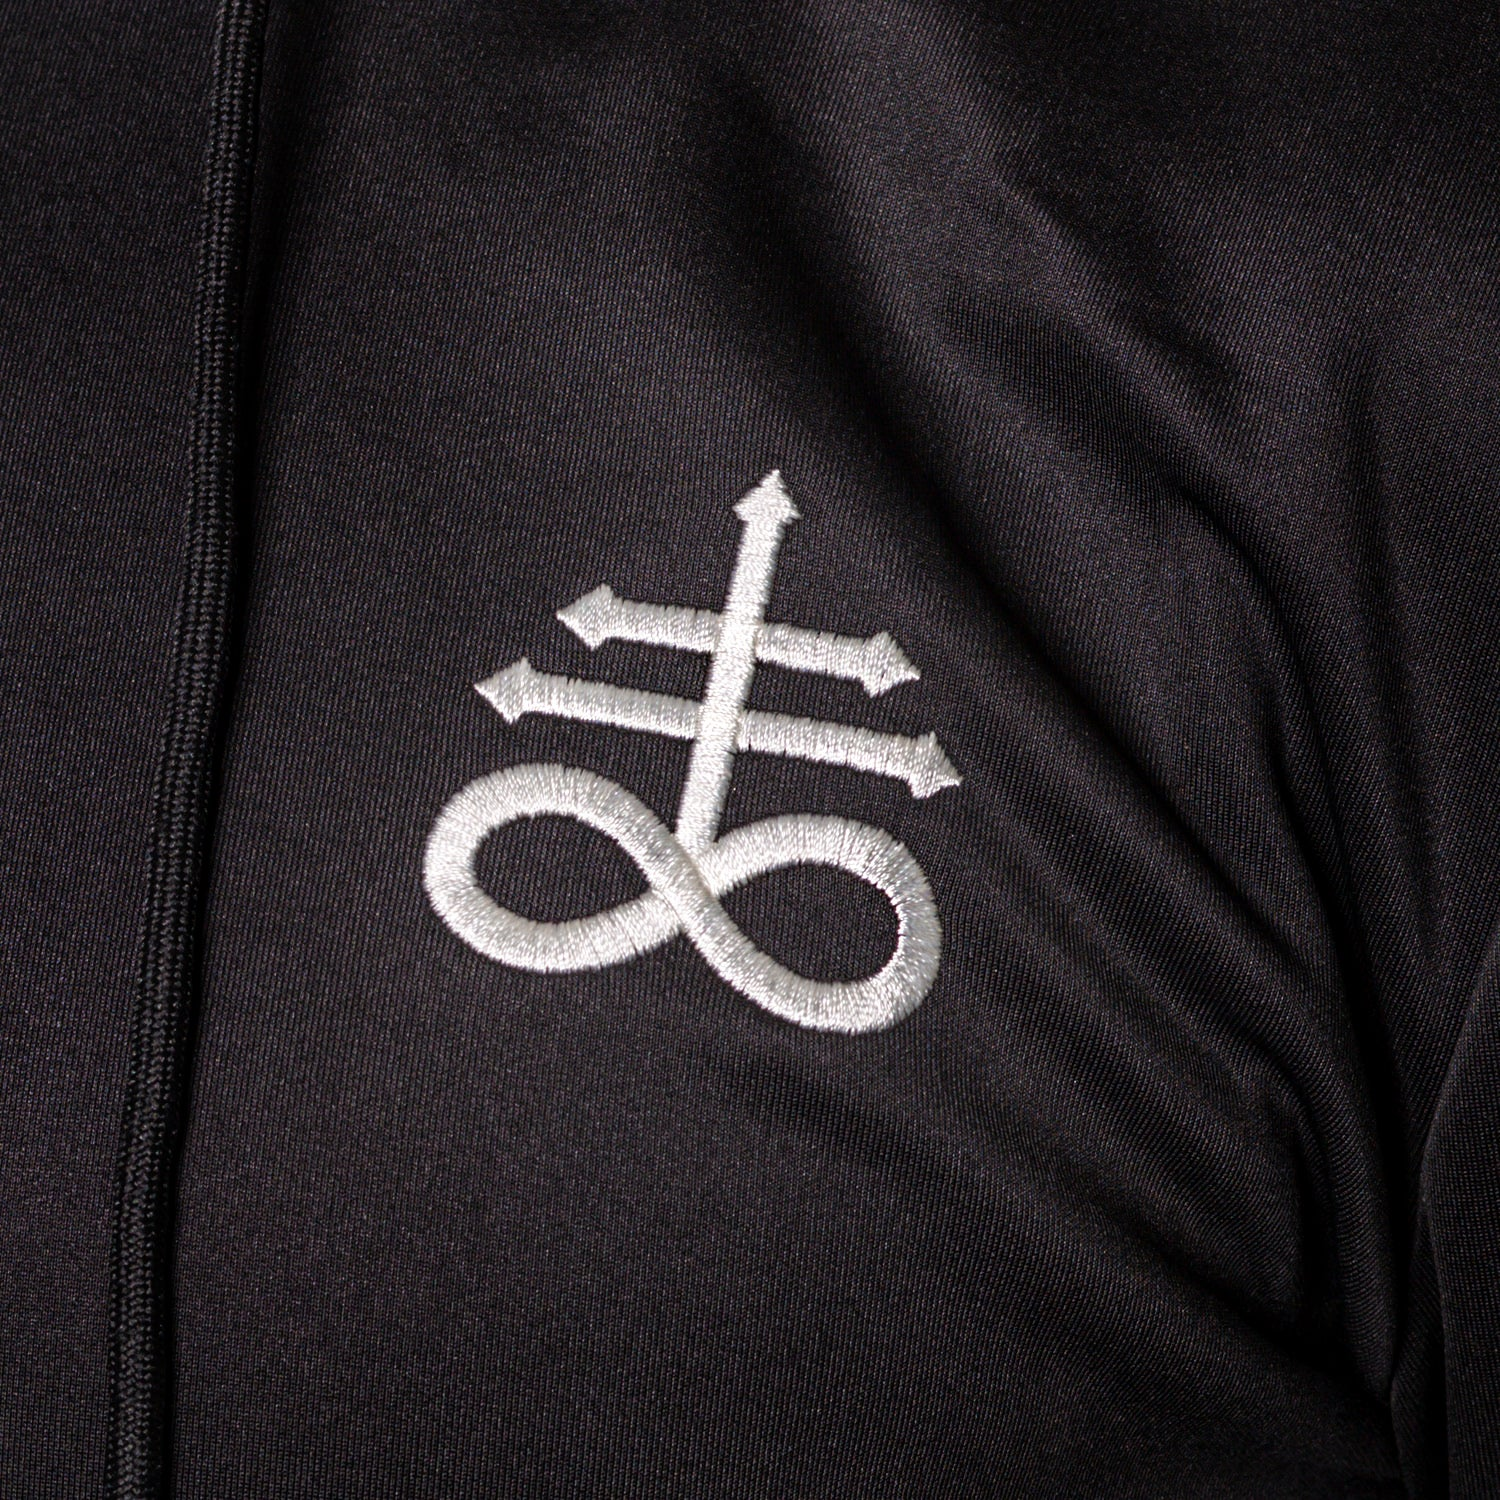 Leviathan Cross Hooded Athletic Longsleeve